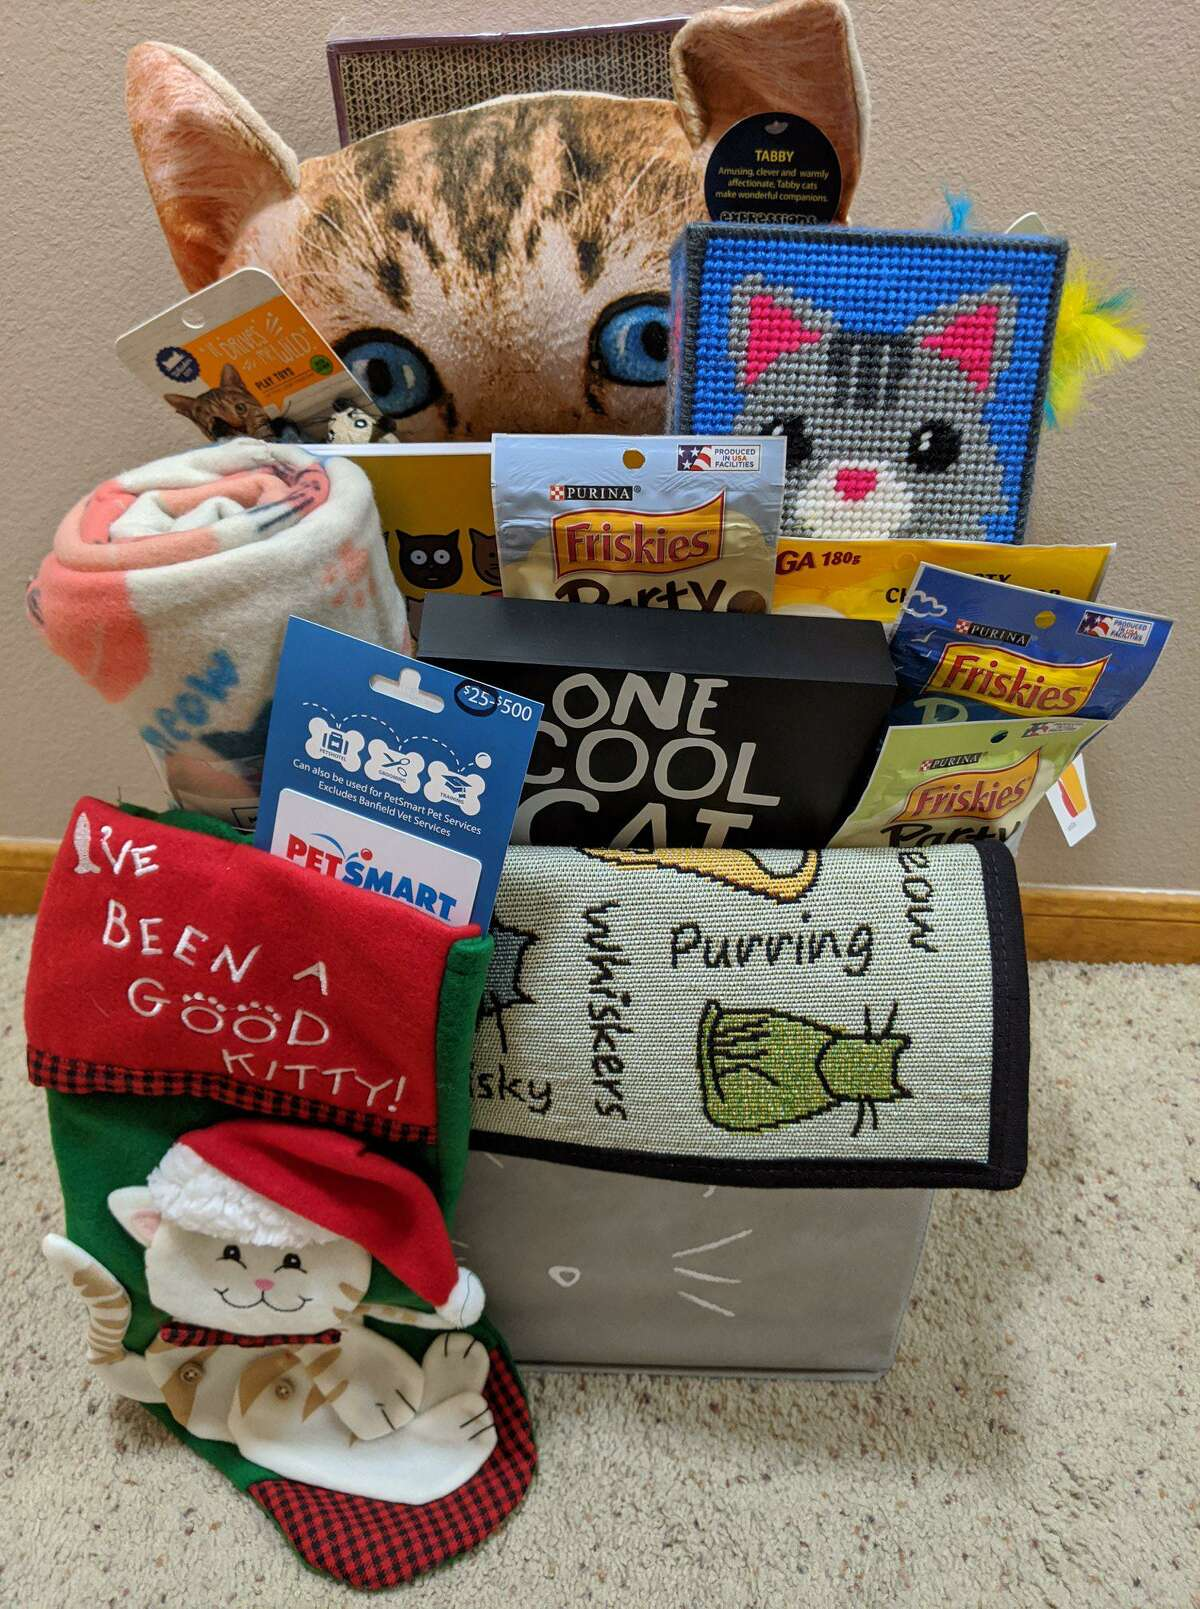 A cat goodies basket will be available at Juliane's Compassion For Critters' fourth annual event, an online basket raffle with tickets on sale via the website from Oct. 1st through October 30th and a live Facebook event to draw the winners on Nov. 1st.